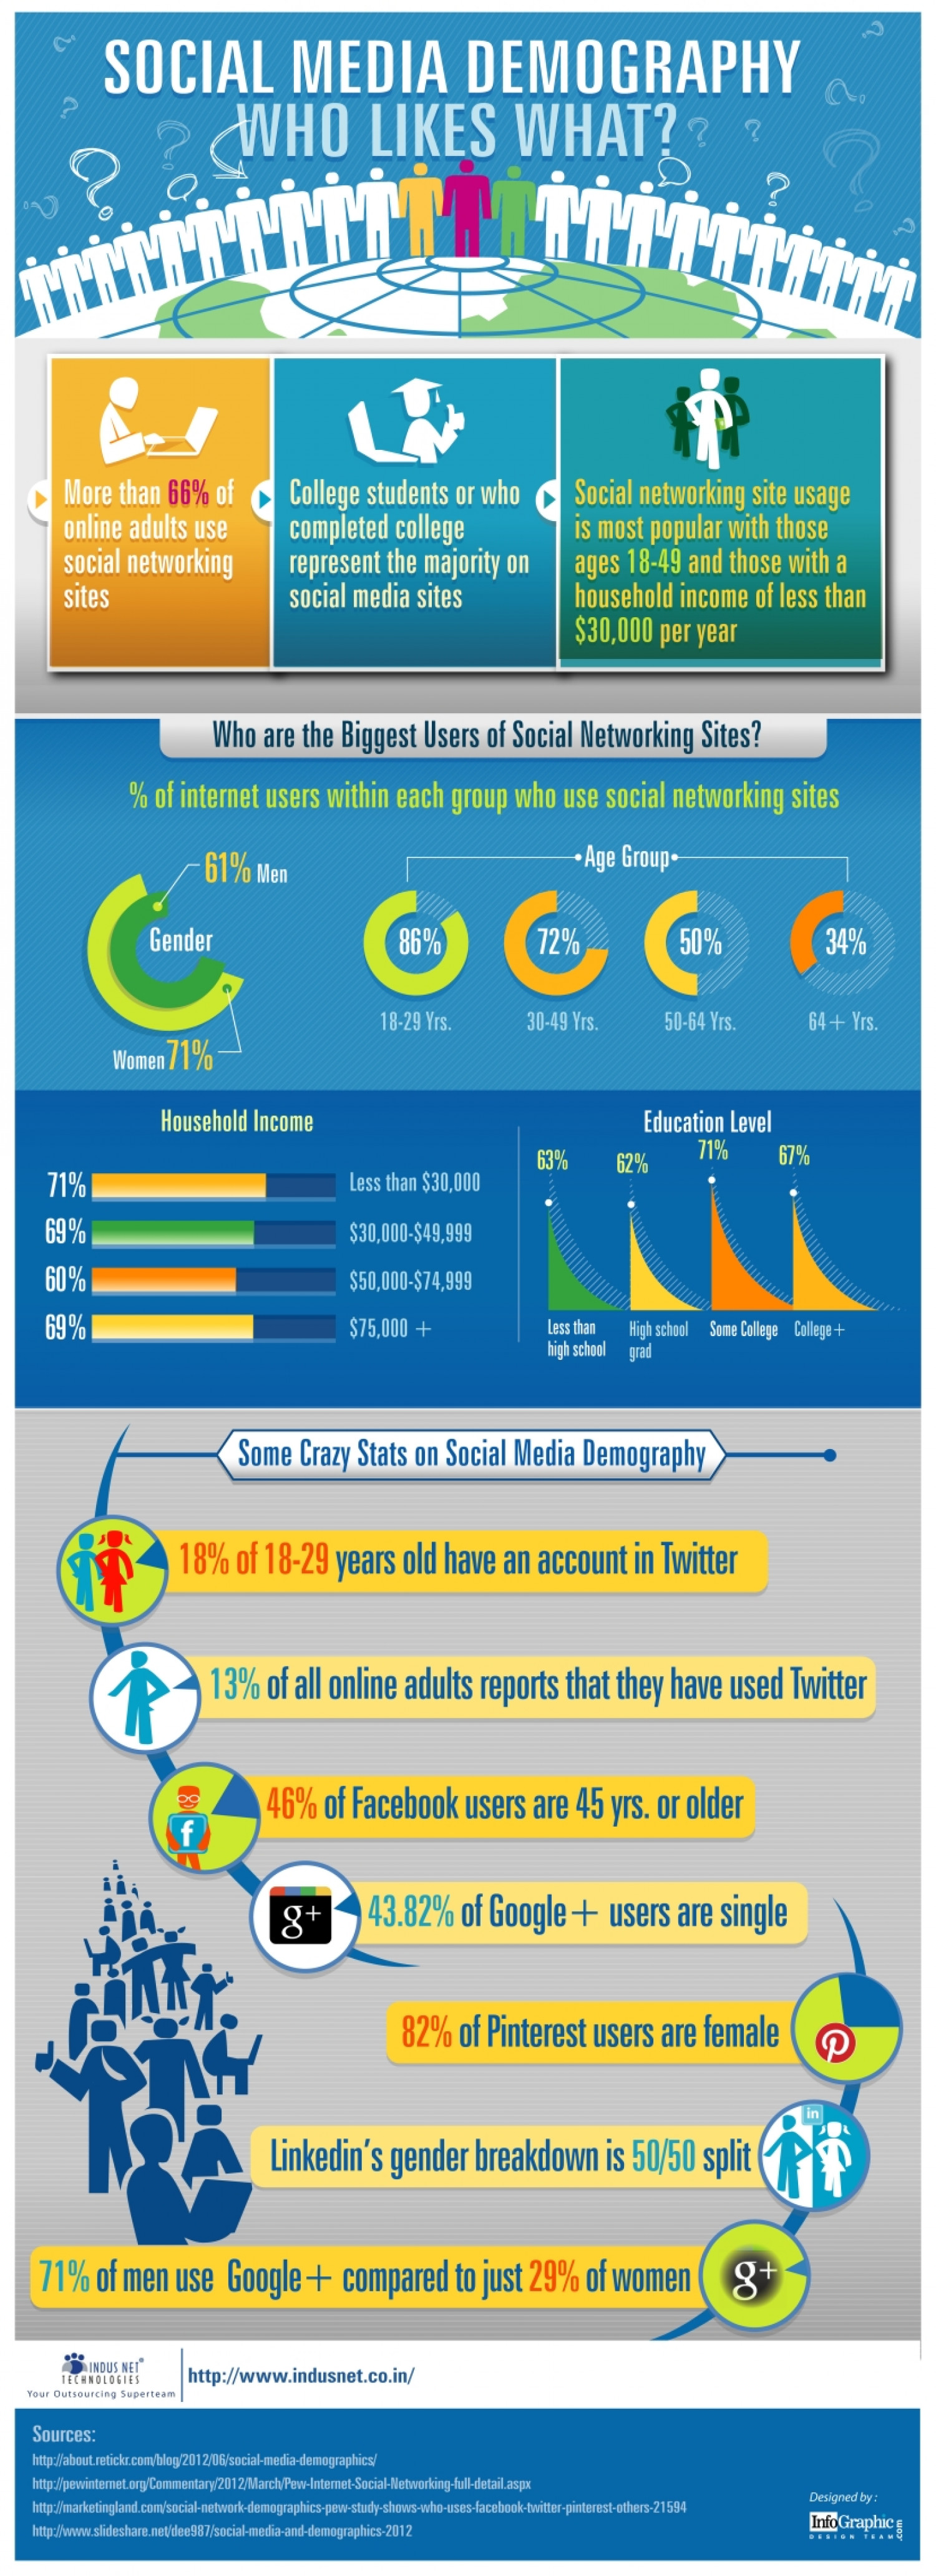 Social Media Demography- Who Likes What? Infographic